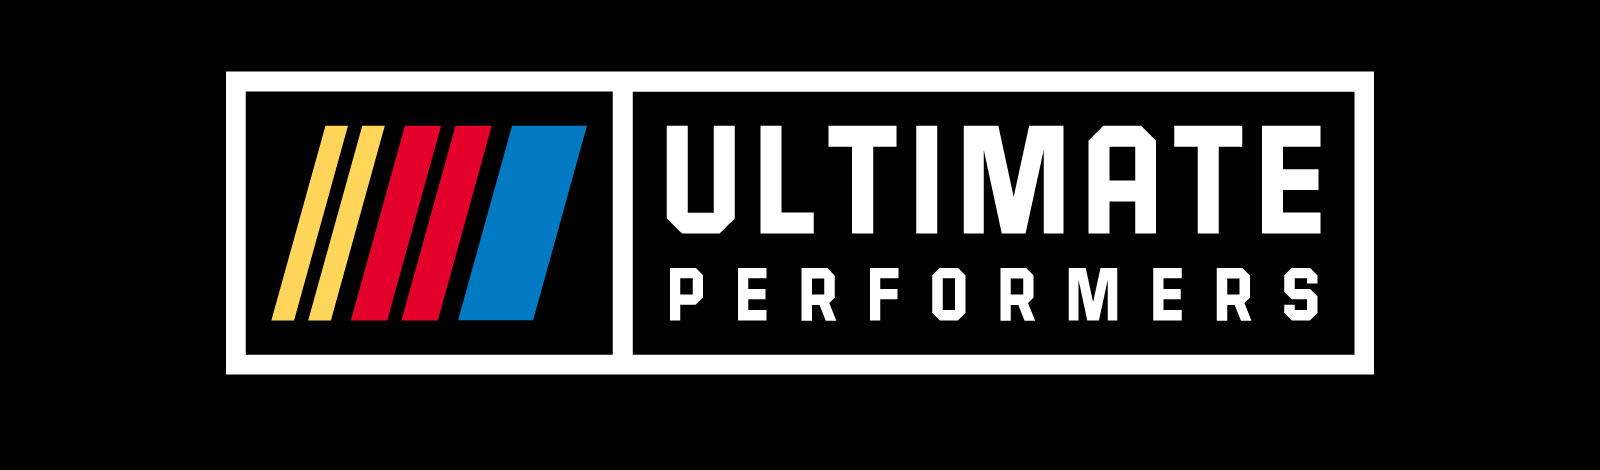 NASCAR Ultimate Performers Logo